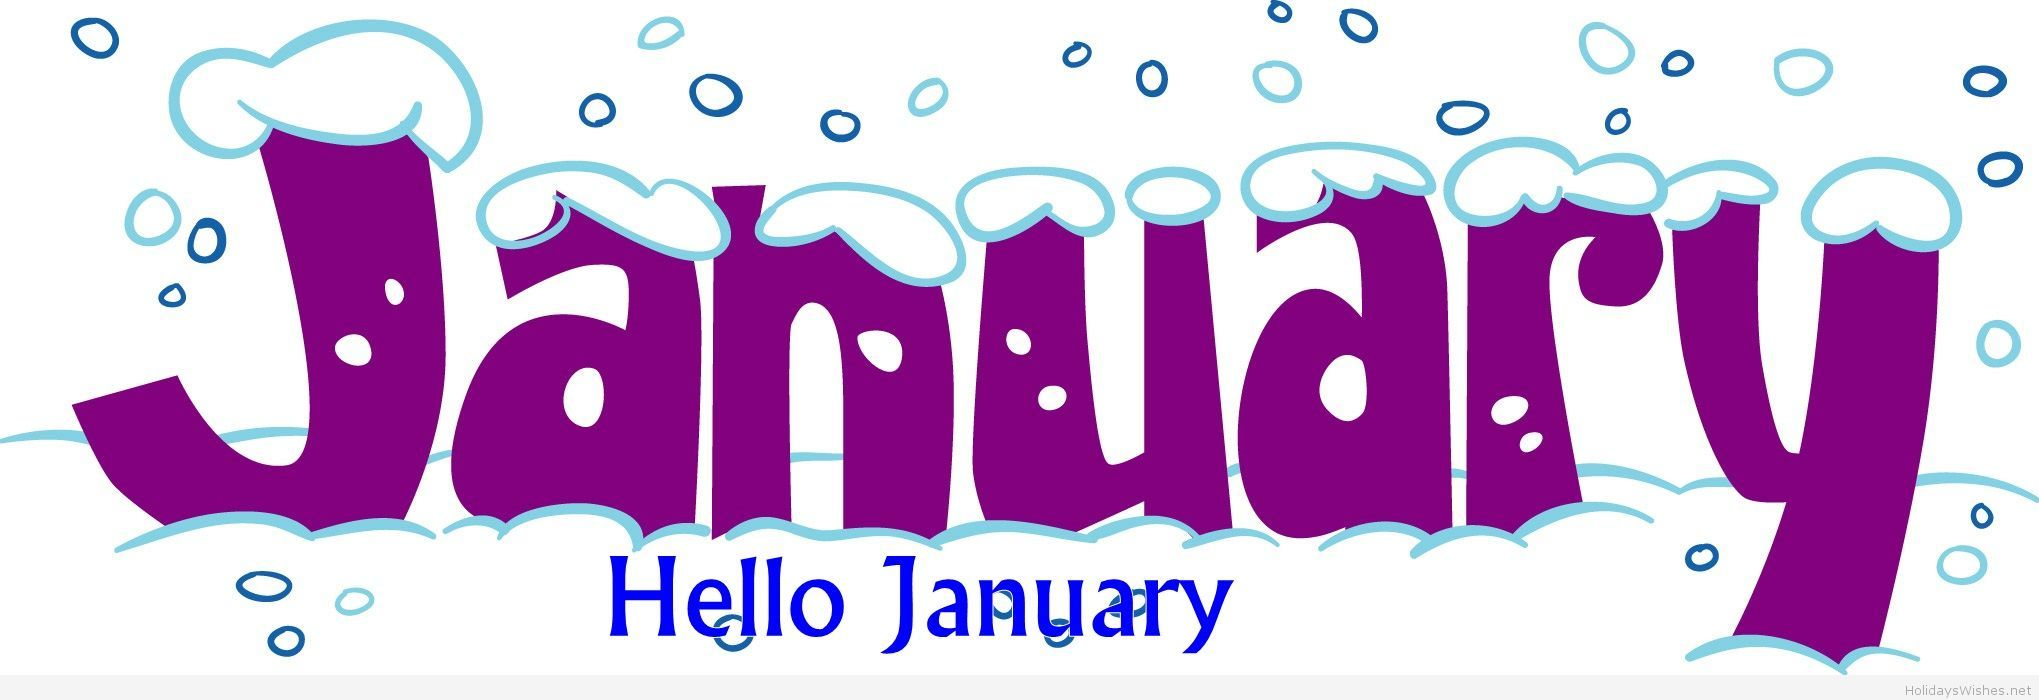 Hello January cover fb Hello january, January clipart